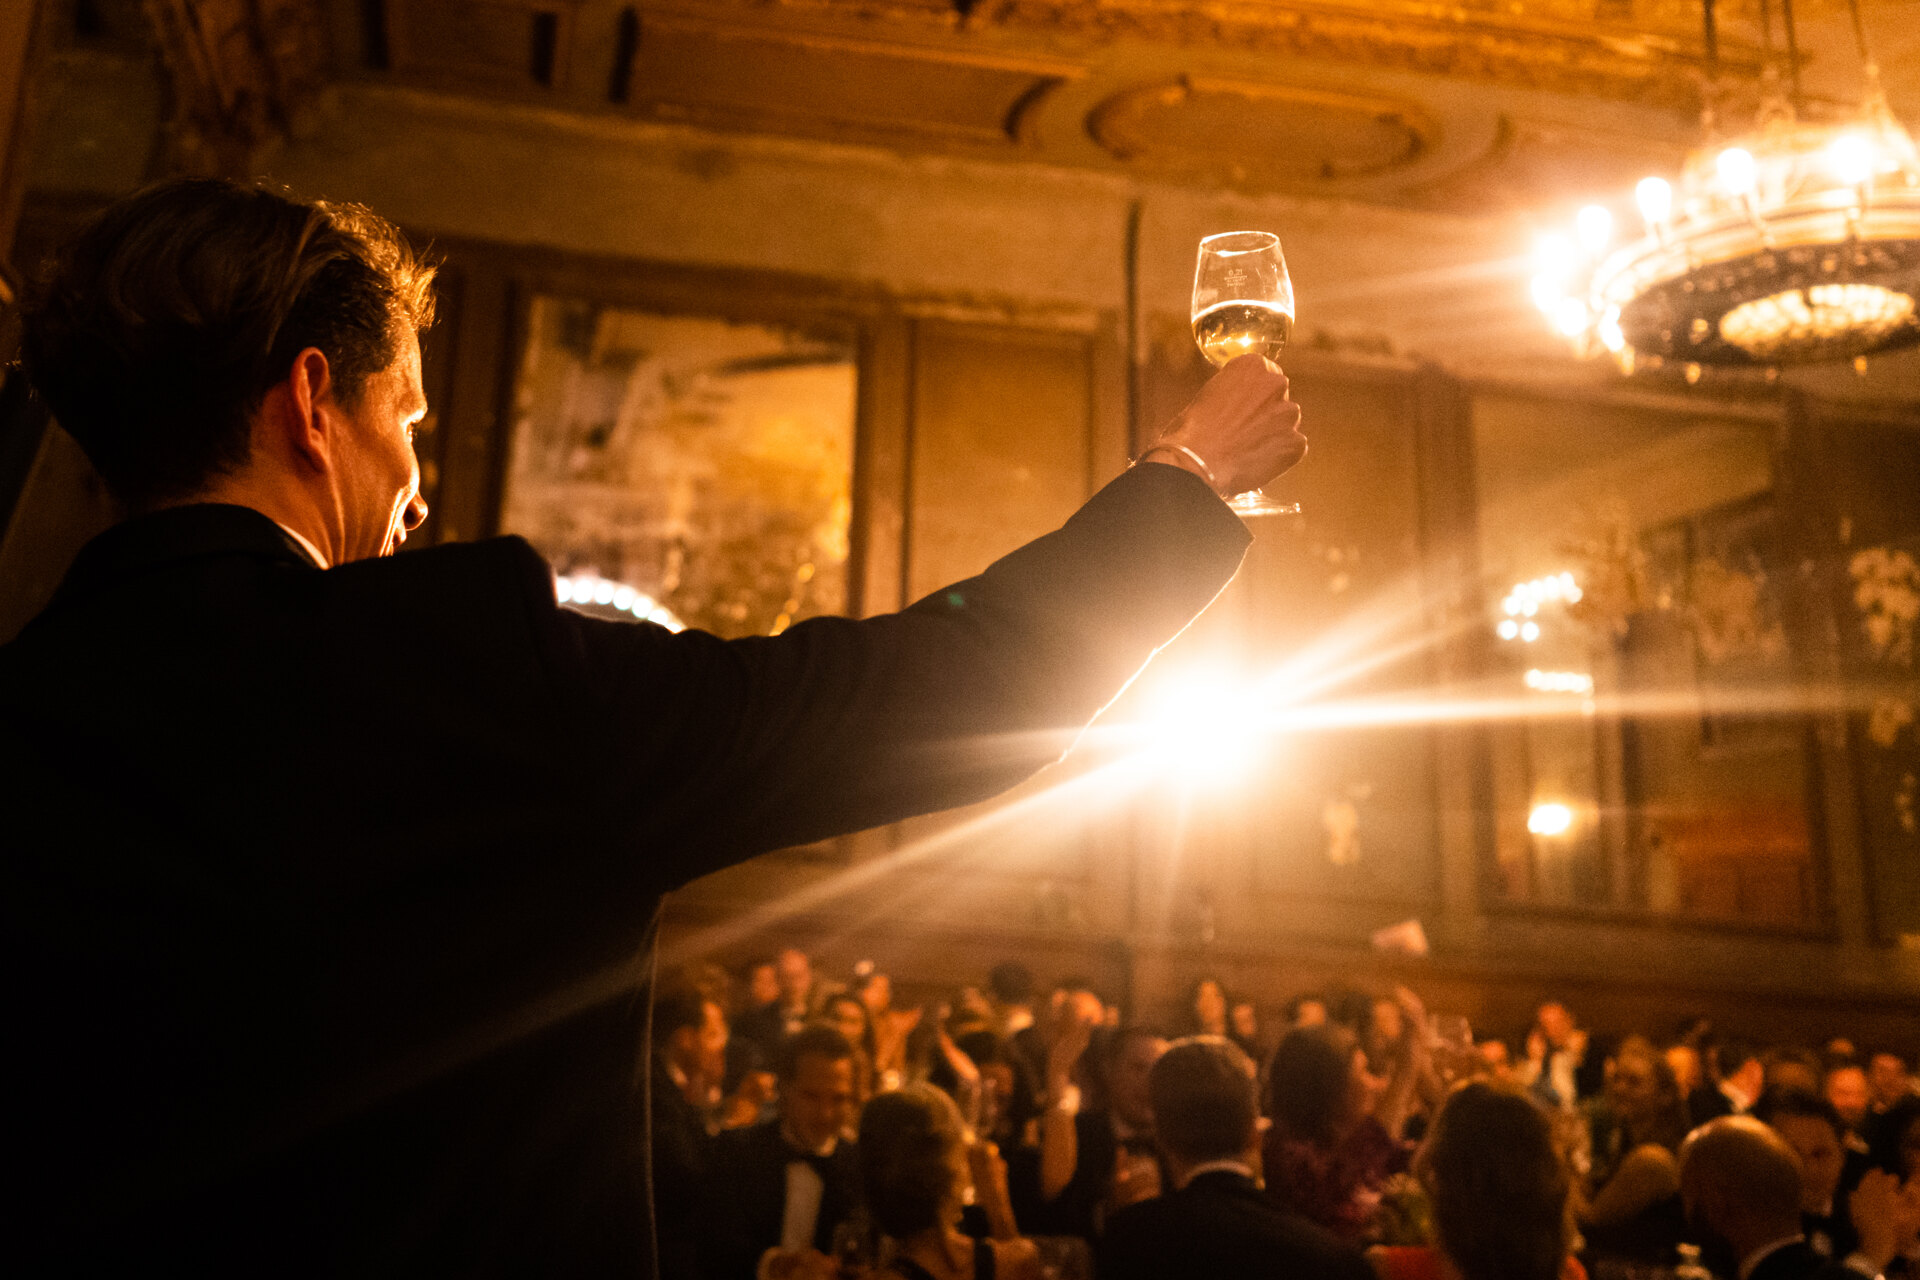 Wedding photography portfolio in Italy: A man raises a glass of wine up in a large festive hall